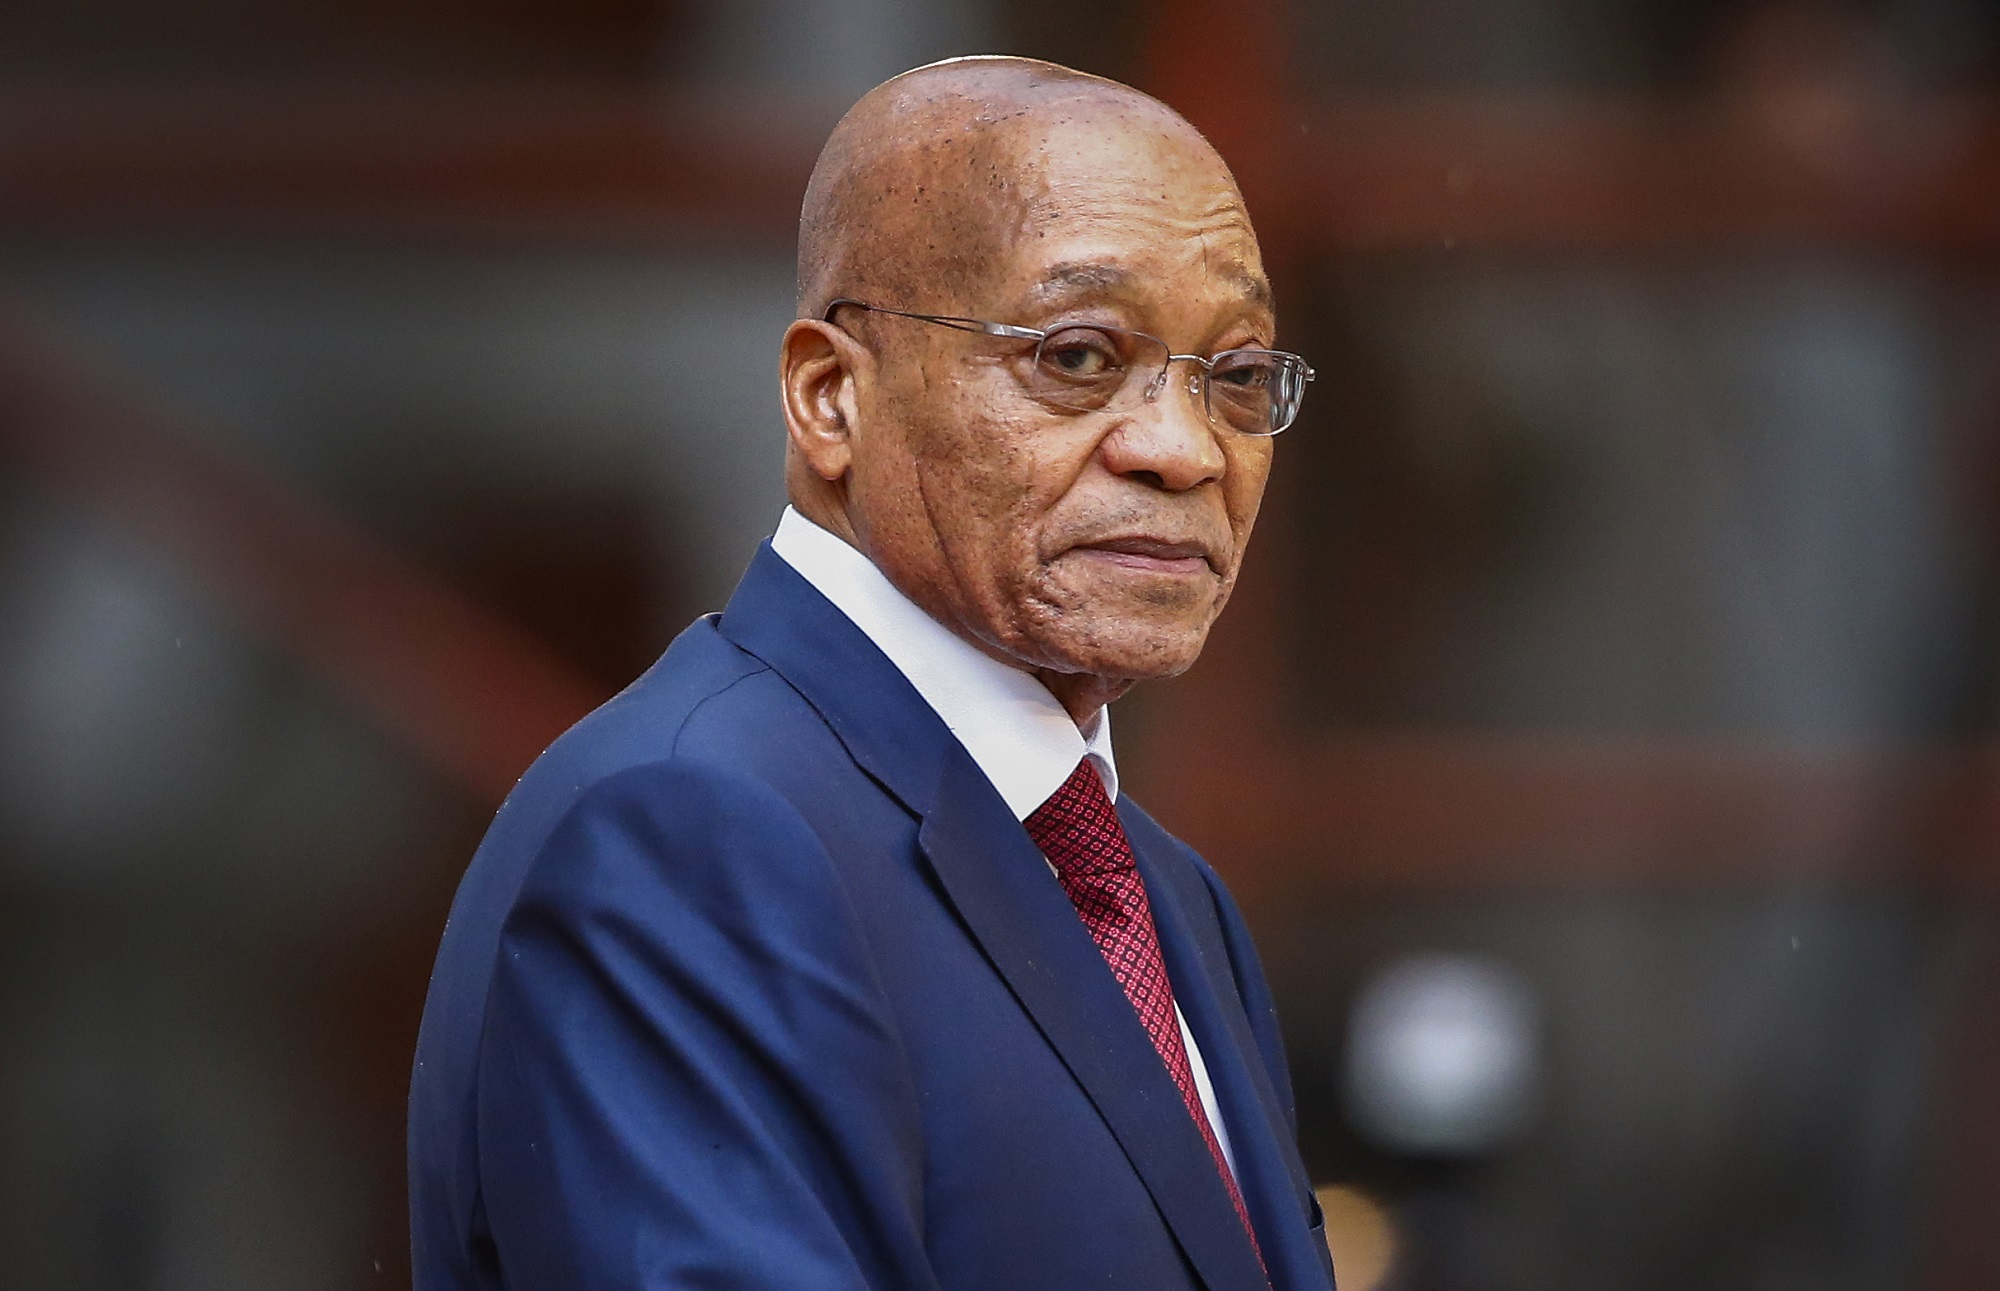 MPs ask whether Zuma will really appoint inquiry into state capture if he himself is implicated